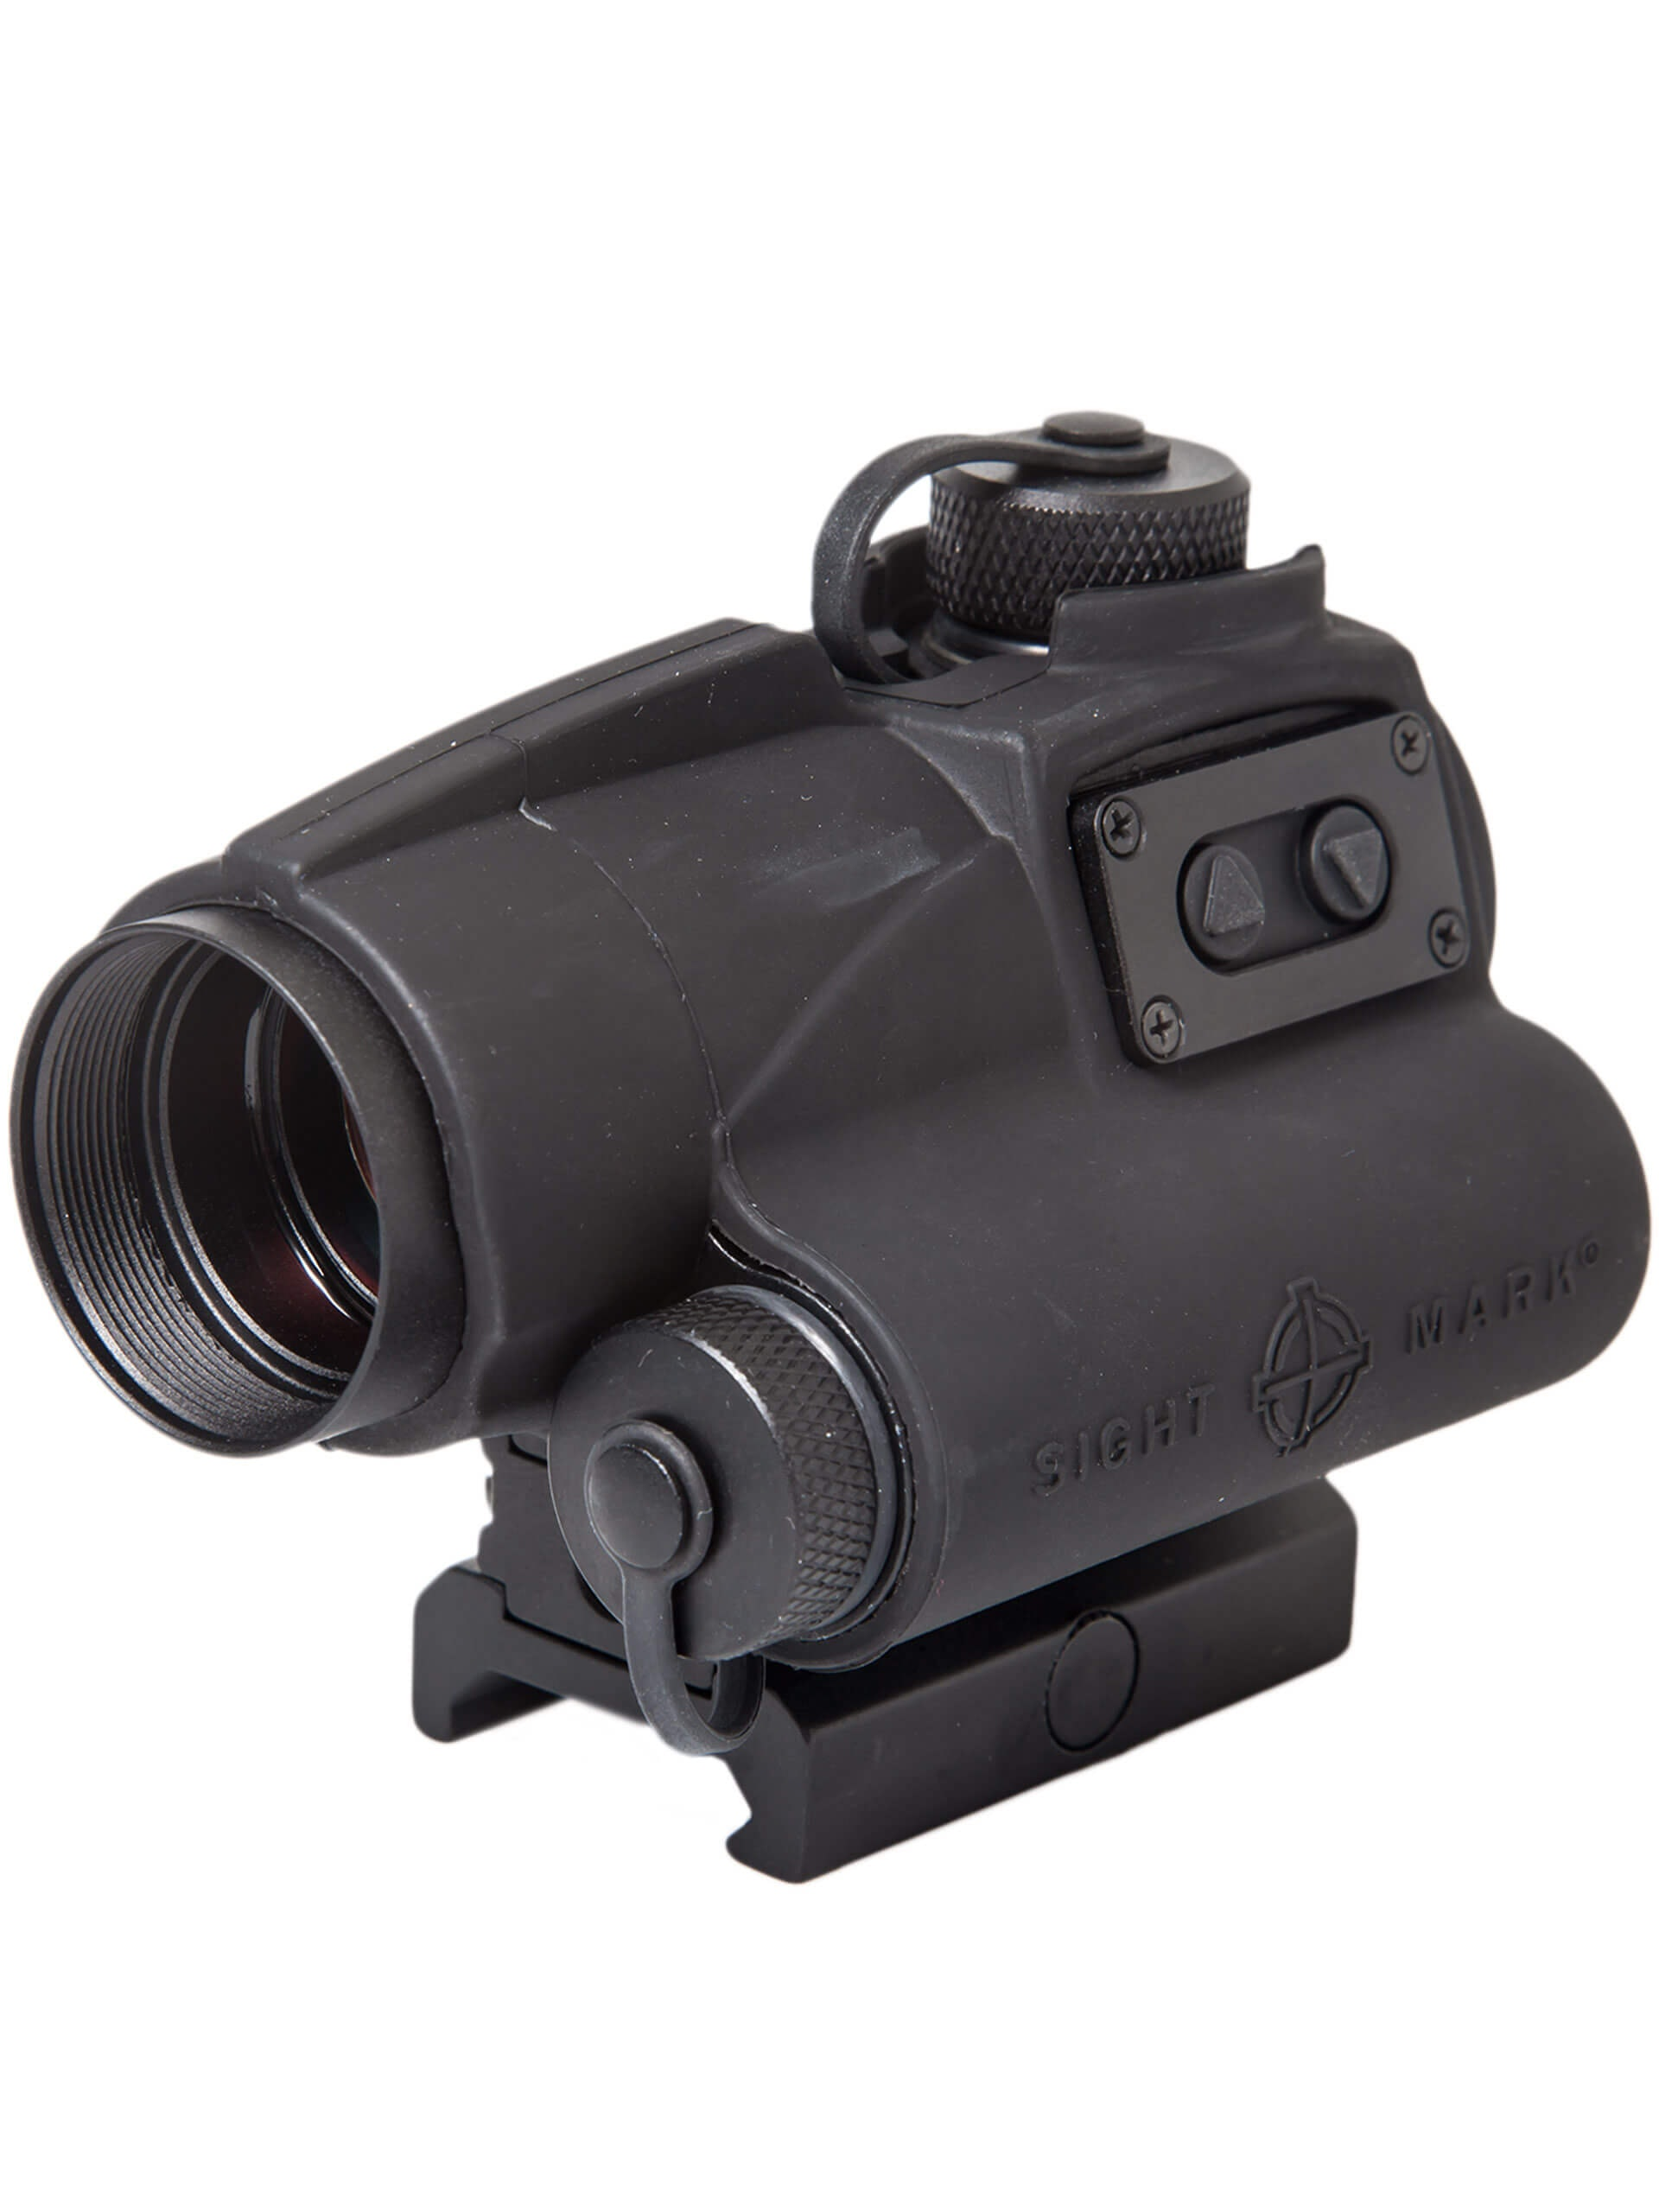 8955773a33b Sightmark Wolverine CSR 1x23 Compact Red Dot Sight